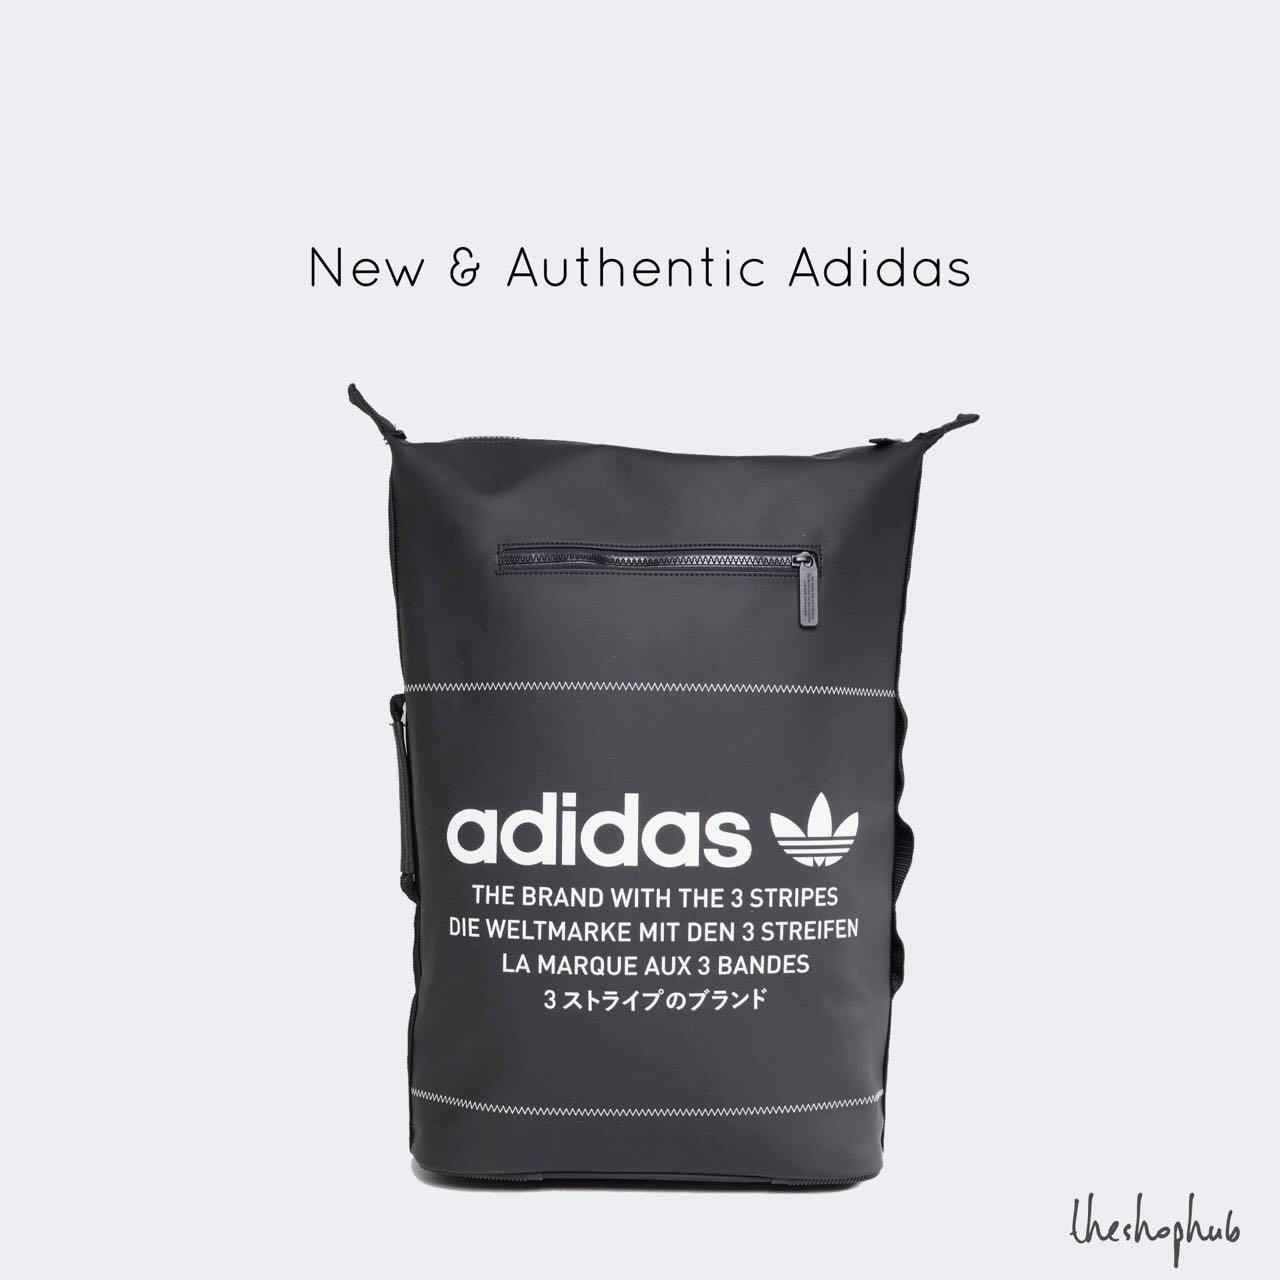 separation shoes c88da cb299  AUTHENTIC  Adidas NMD Backpack- Black, Men s Fashion, Bags   Wallets,  Backpacks on Carousell